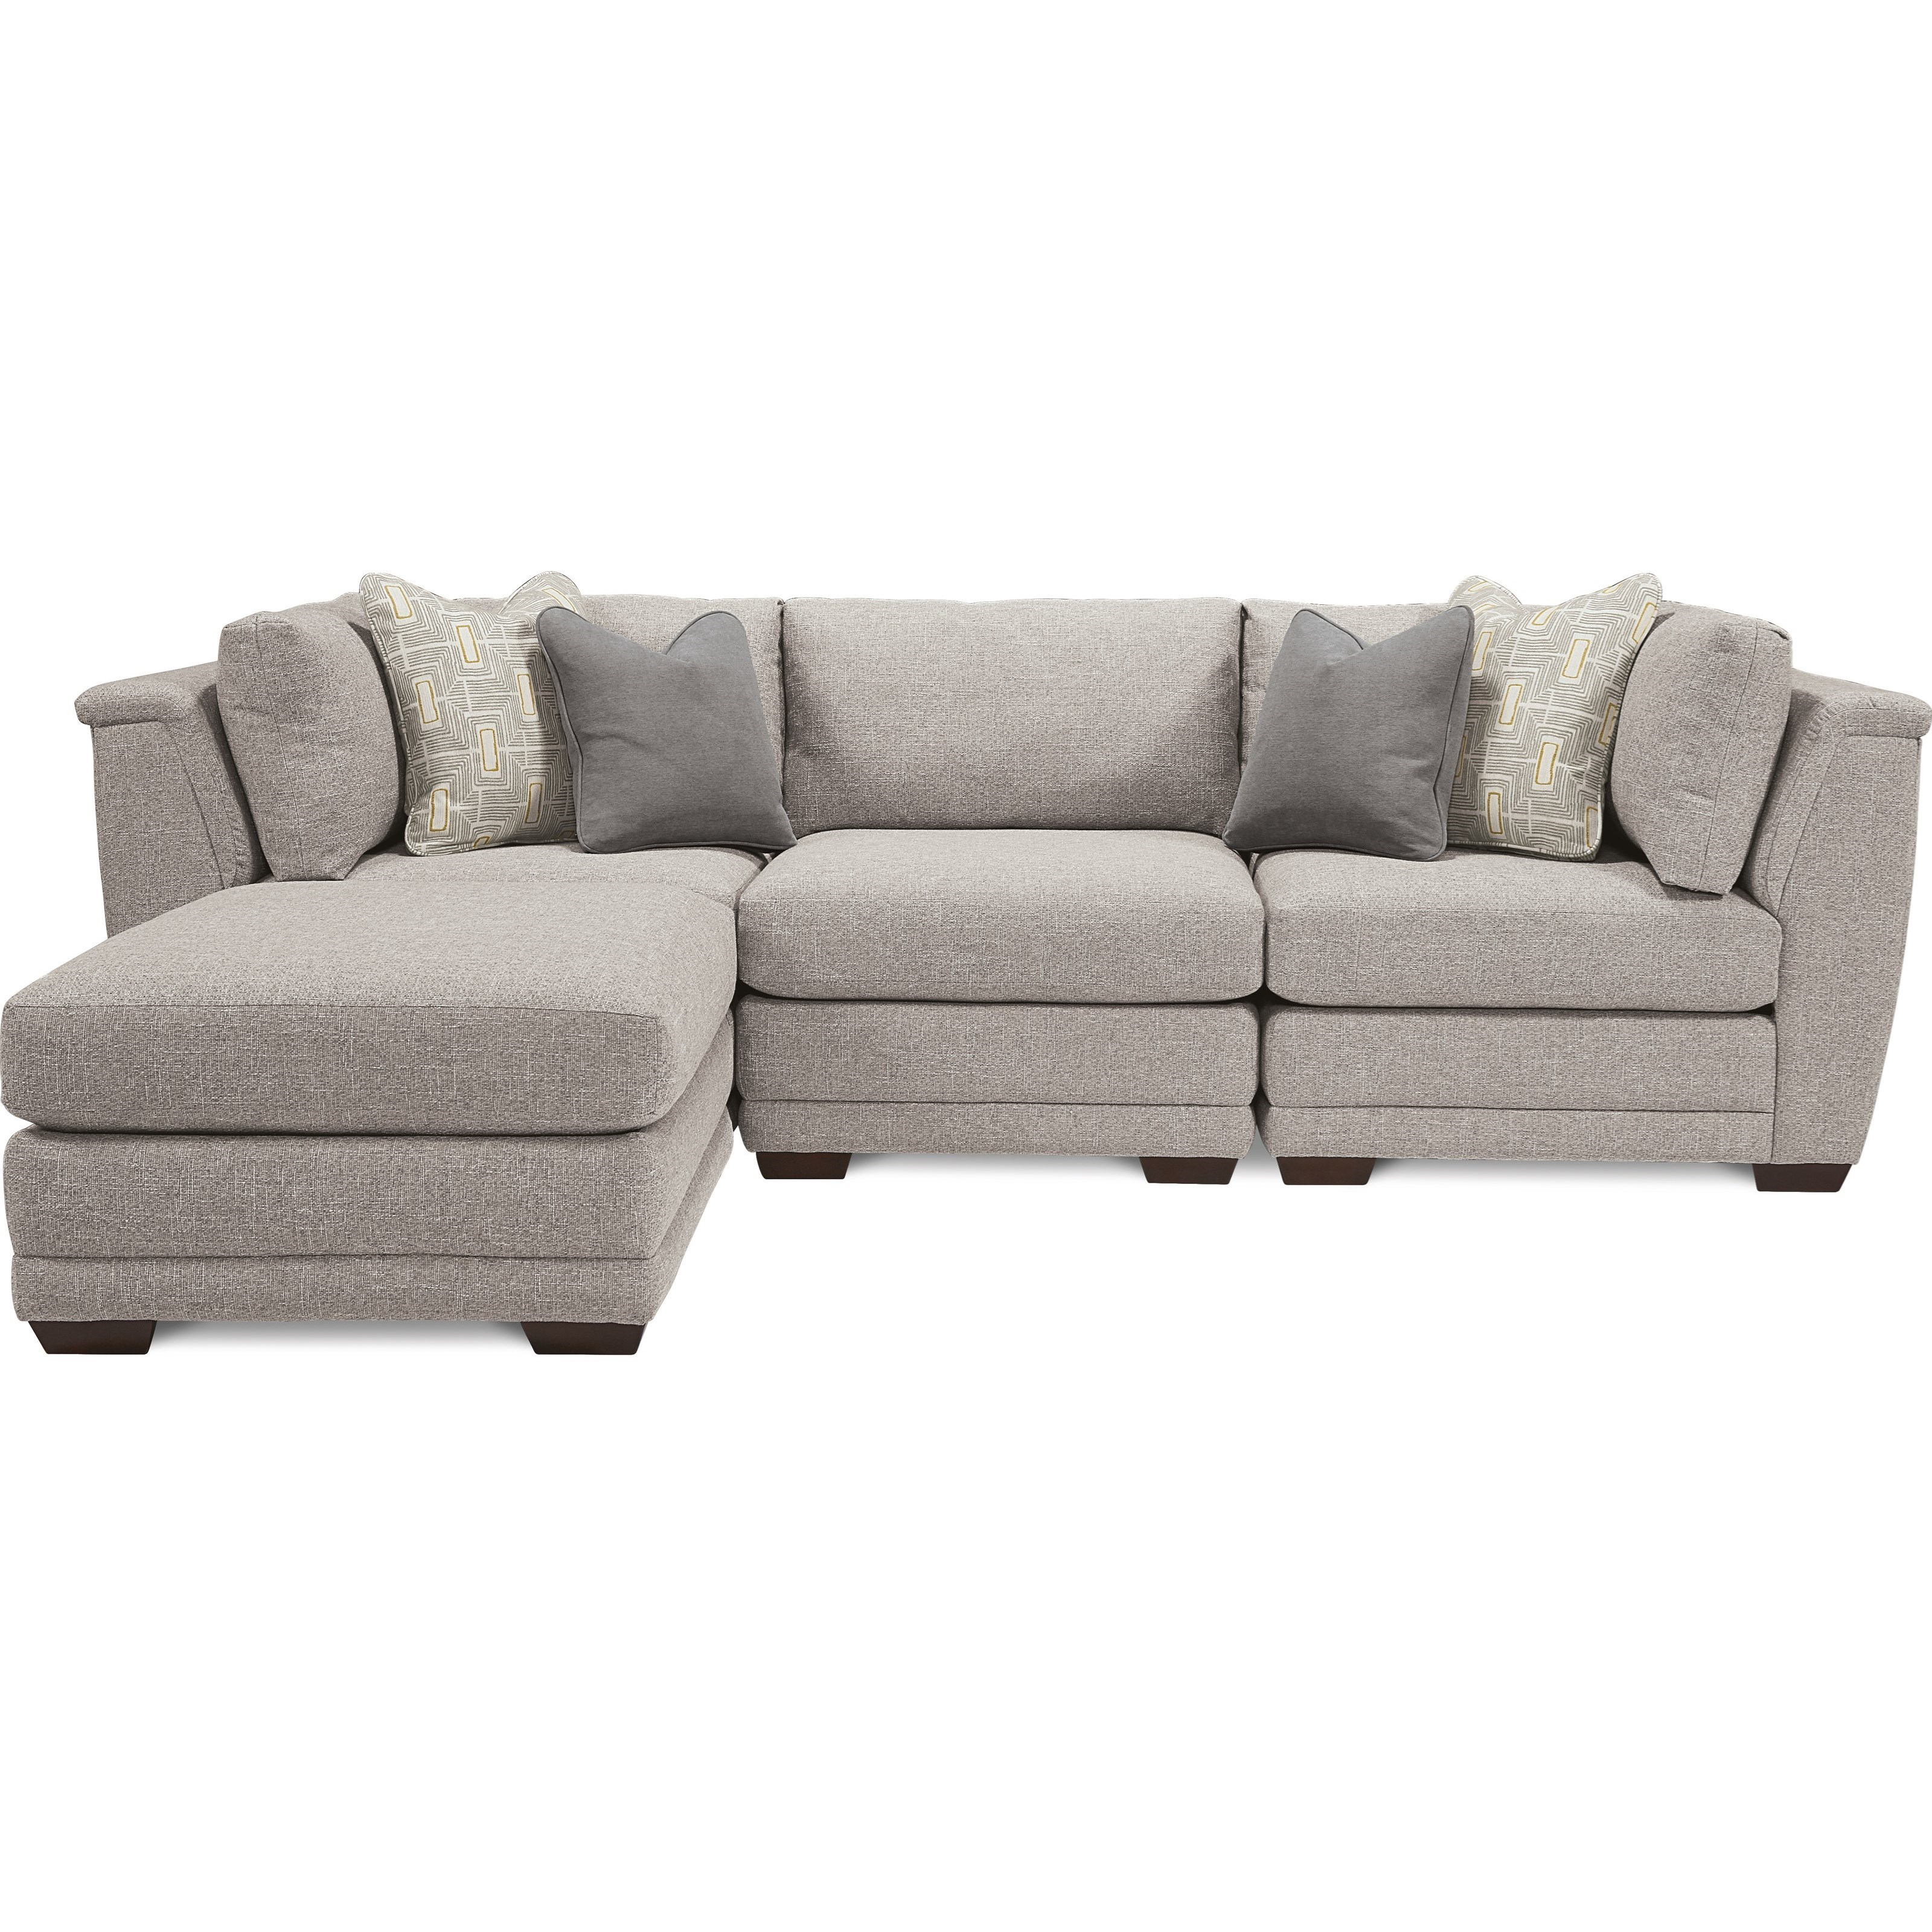 ridgemont 4 piece sectional with ottoman chaise by la z boy